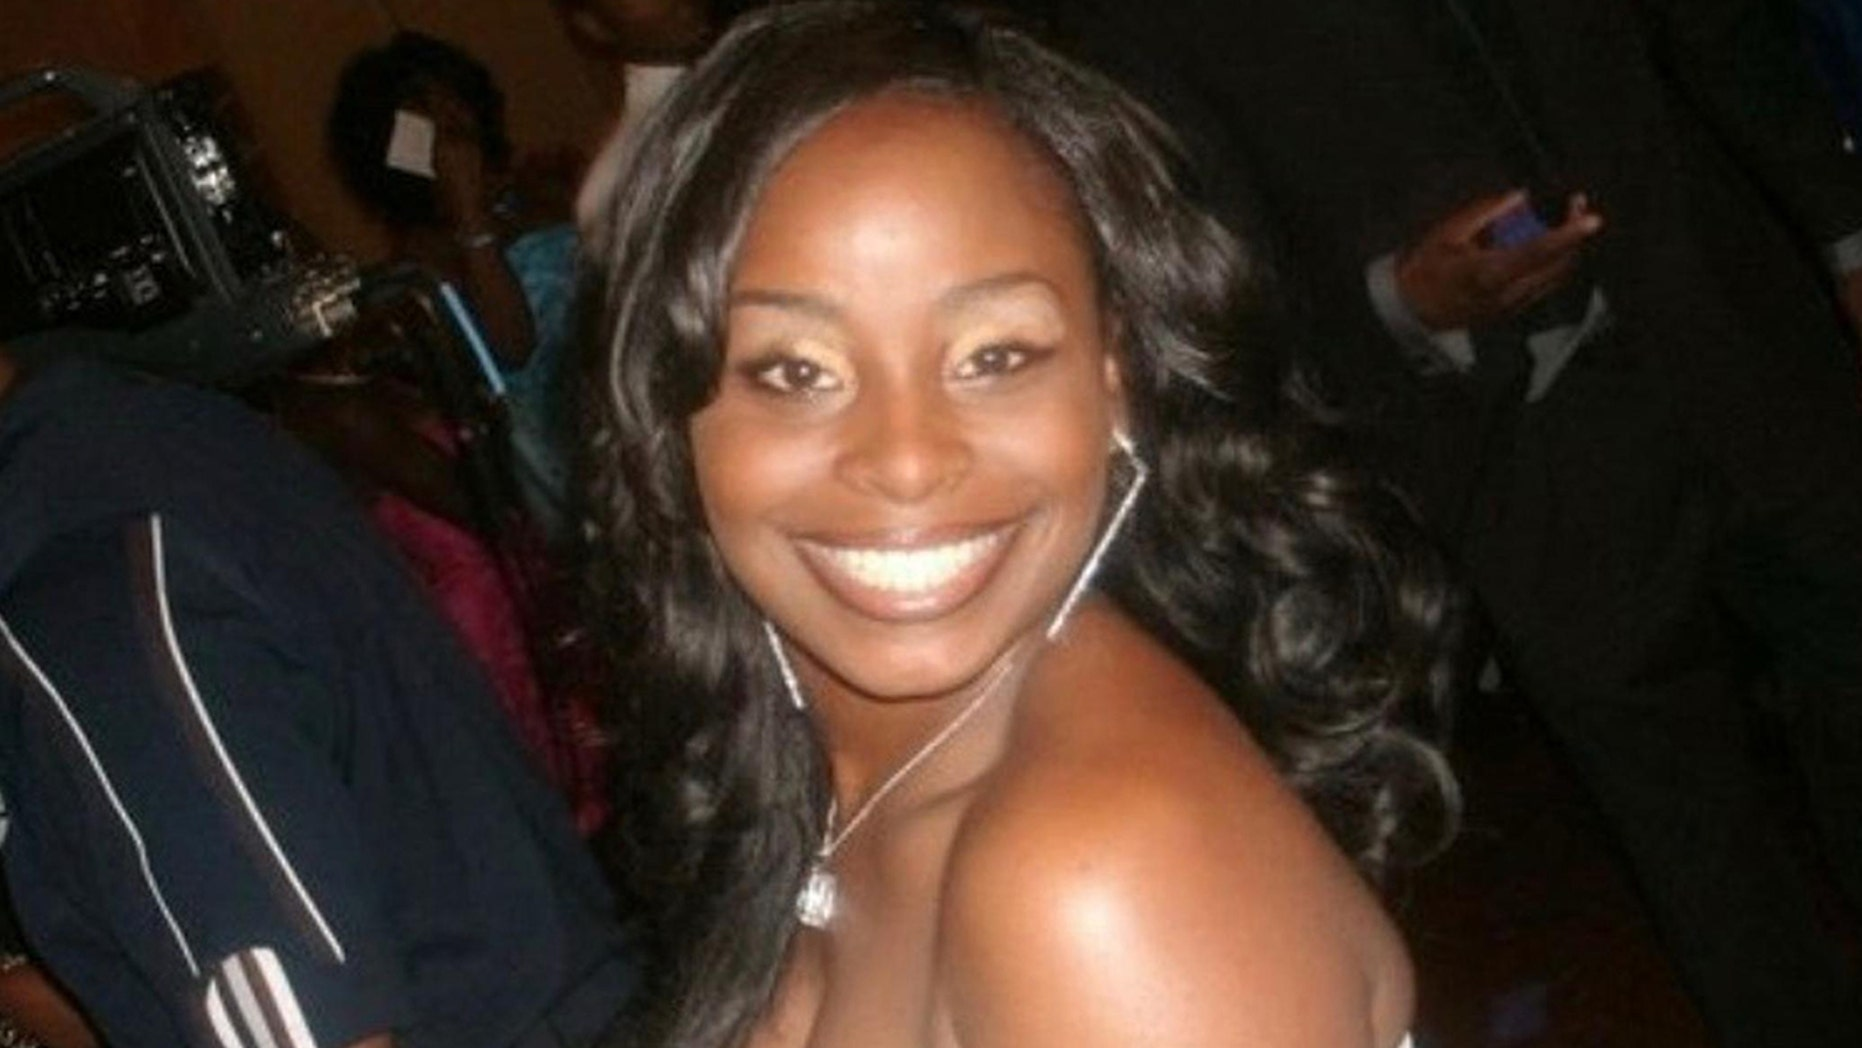 The family of Kalil McCoy, pictured, was awarded almost $500 million in the wrongful death lawsuit of the 20-year-old.